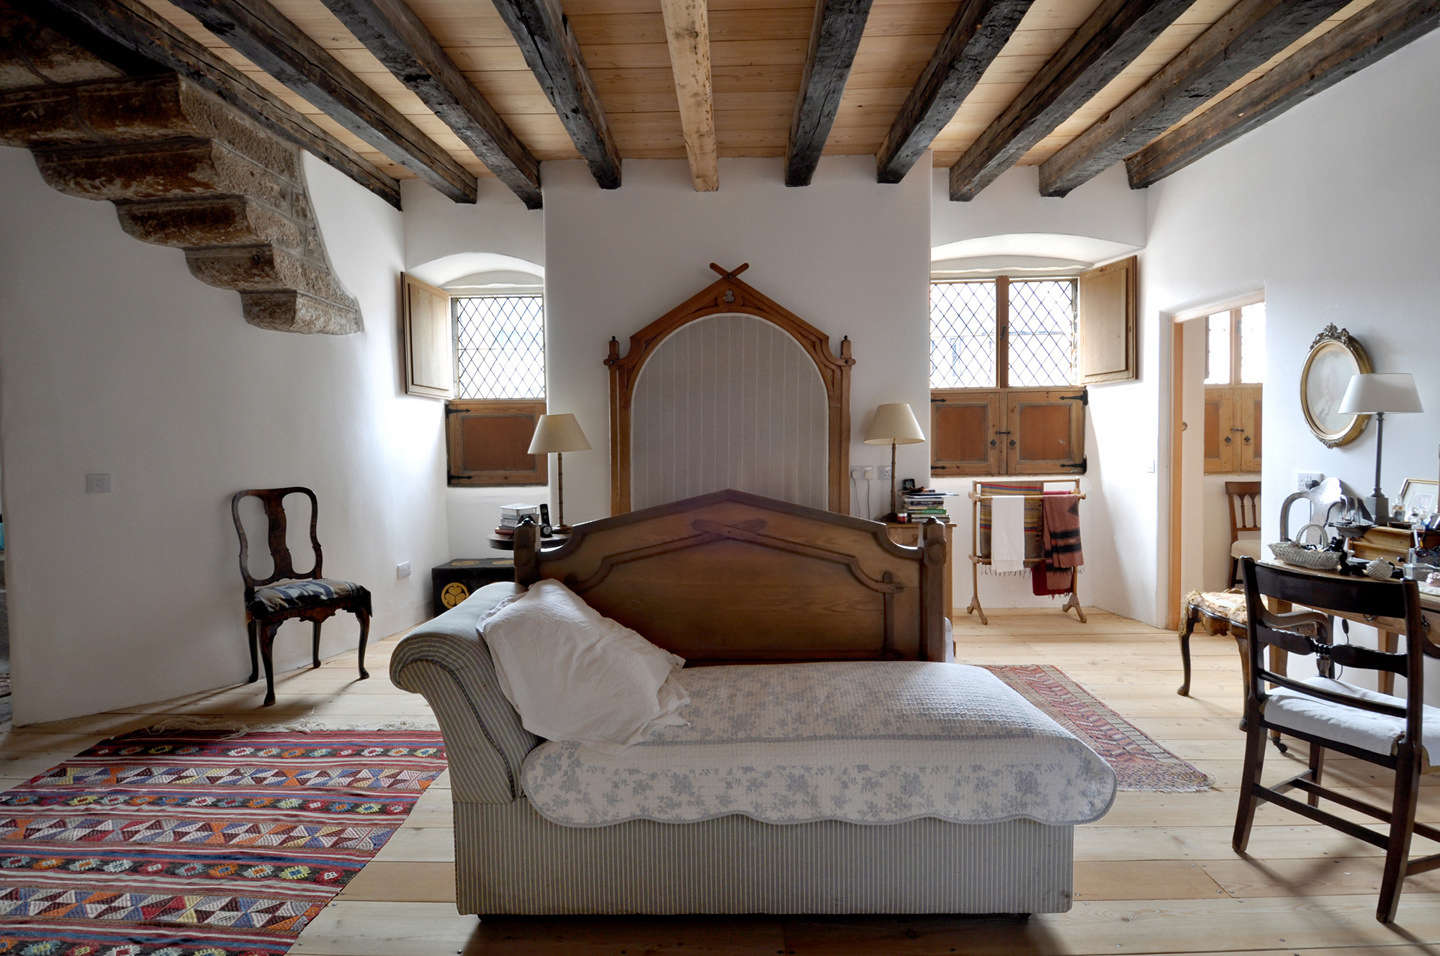 The main bedroom features an antique bed and colorful kilims.